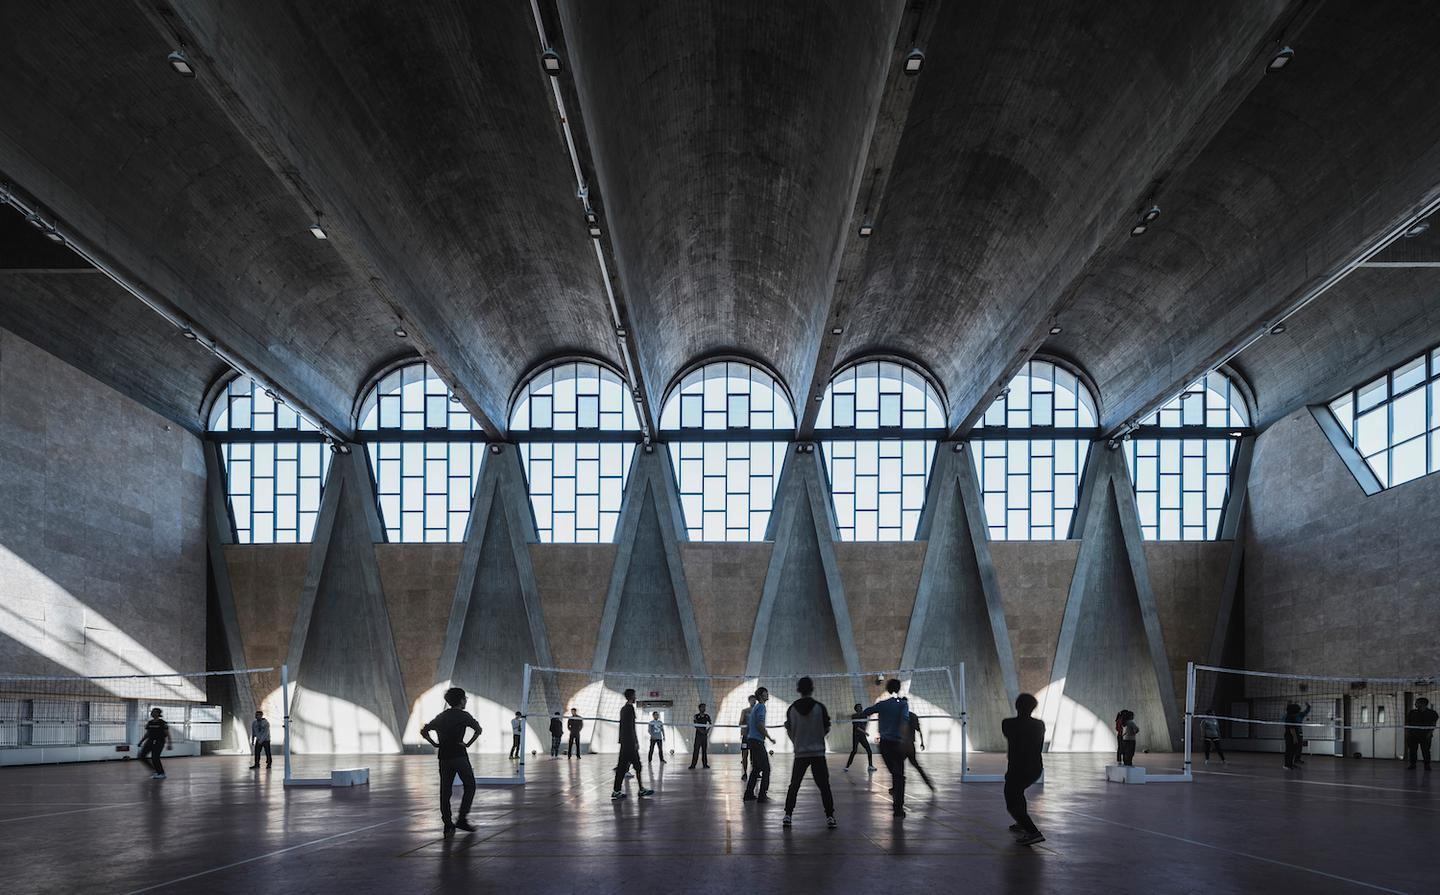 China'sTerrence Zhang took this moodyphotographof the Gymnasium of the New Campus of Tianjin University, China, by Atelier Li Xinggang. The image was entered intothe Buildings In Use category